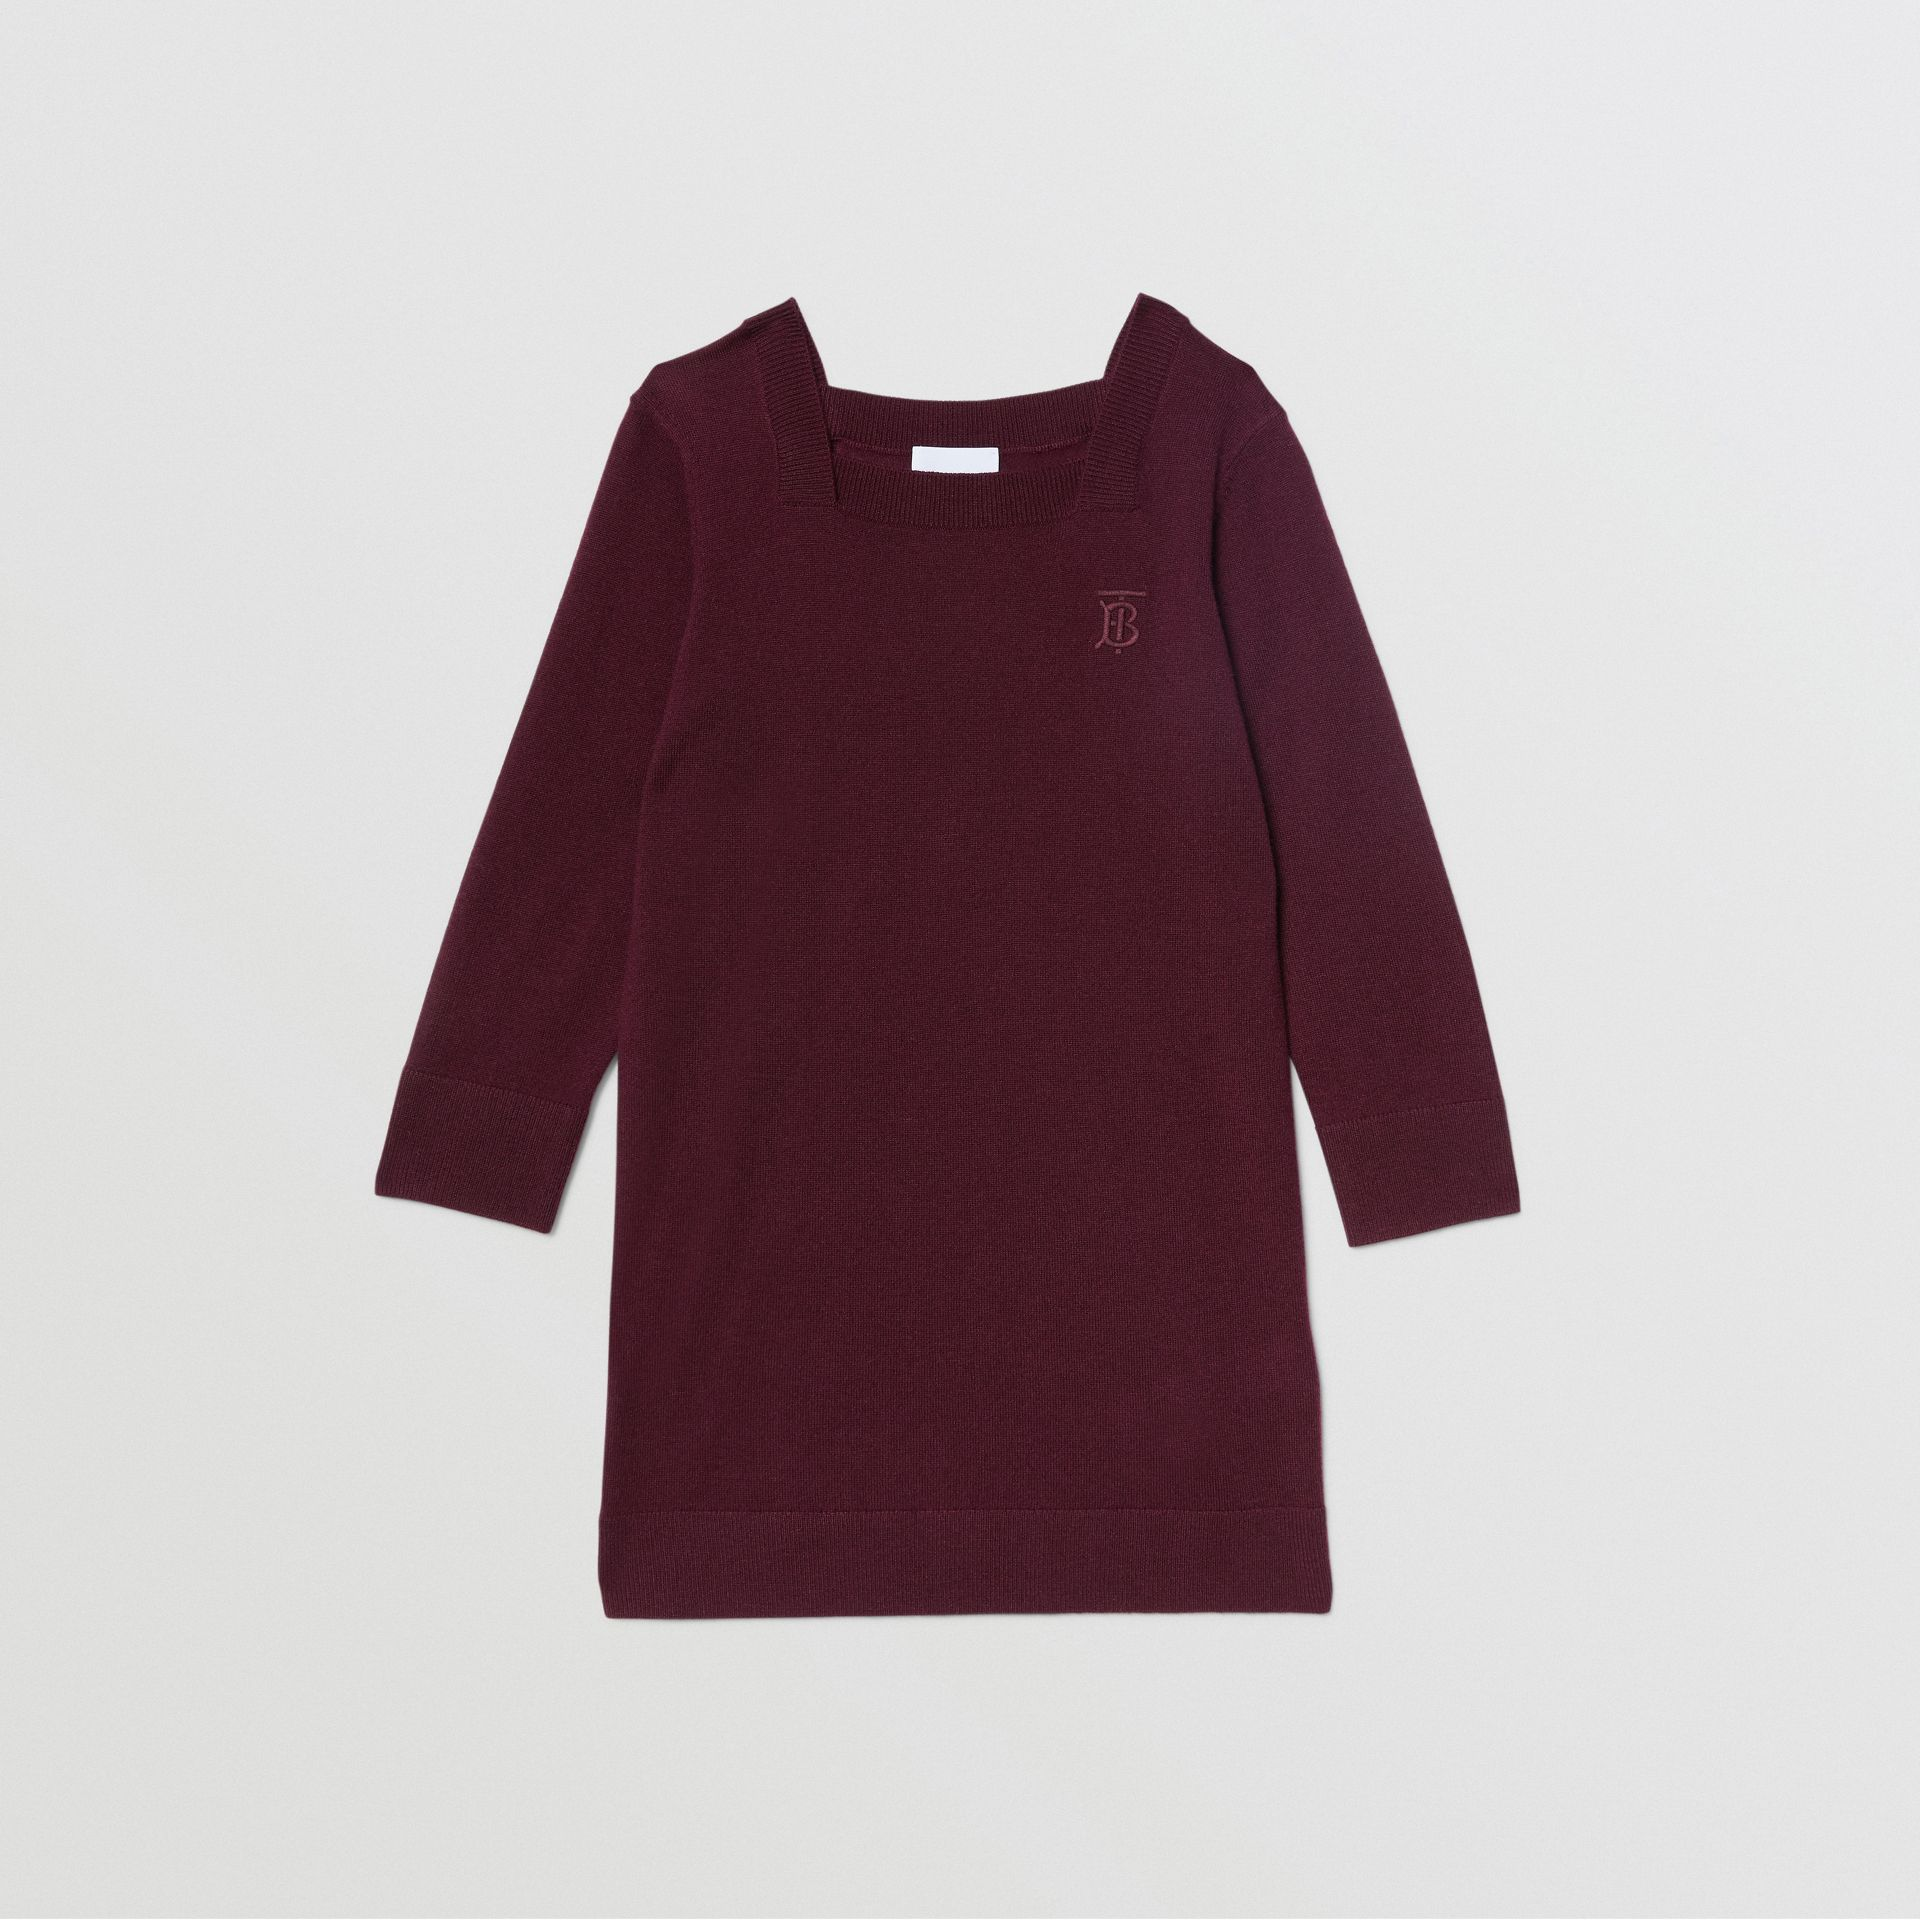 Monogram Motif Cashmere Sweater Dress in Burgundy | Burberry - gallery image 0